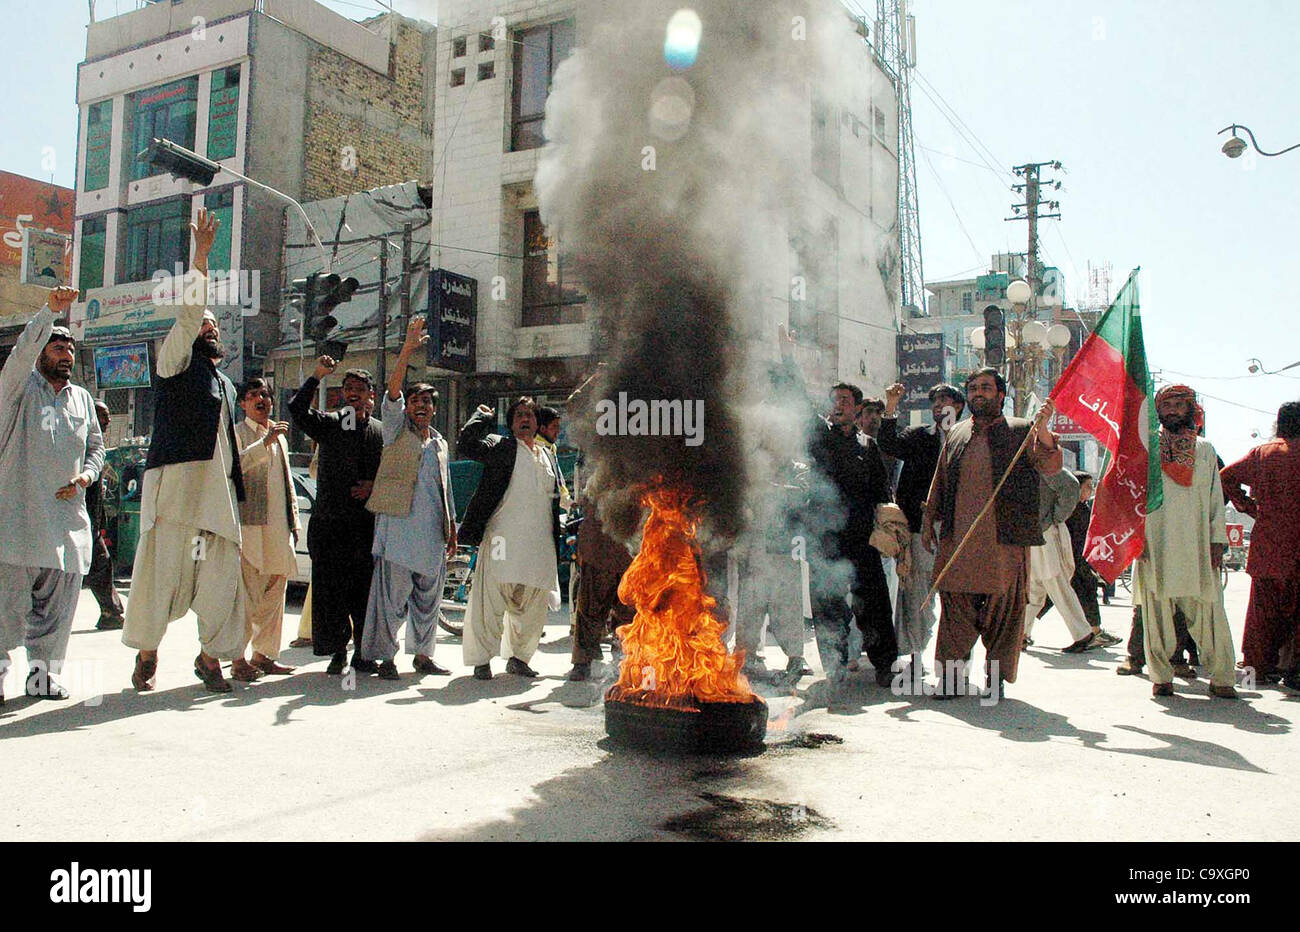 Supporters of Tehreek-e-Insaf (PTI) Youth Wing stand at